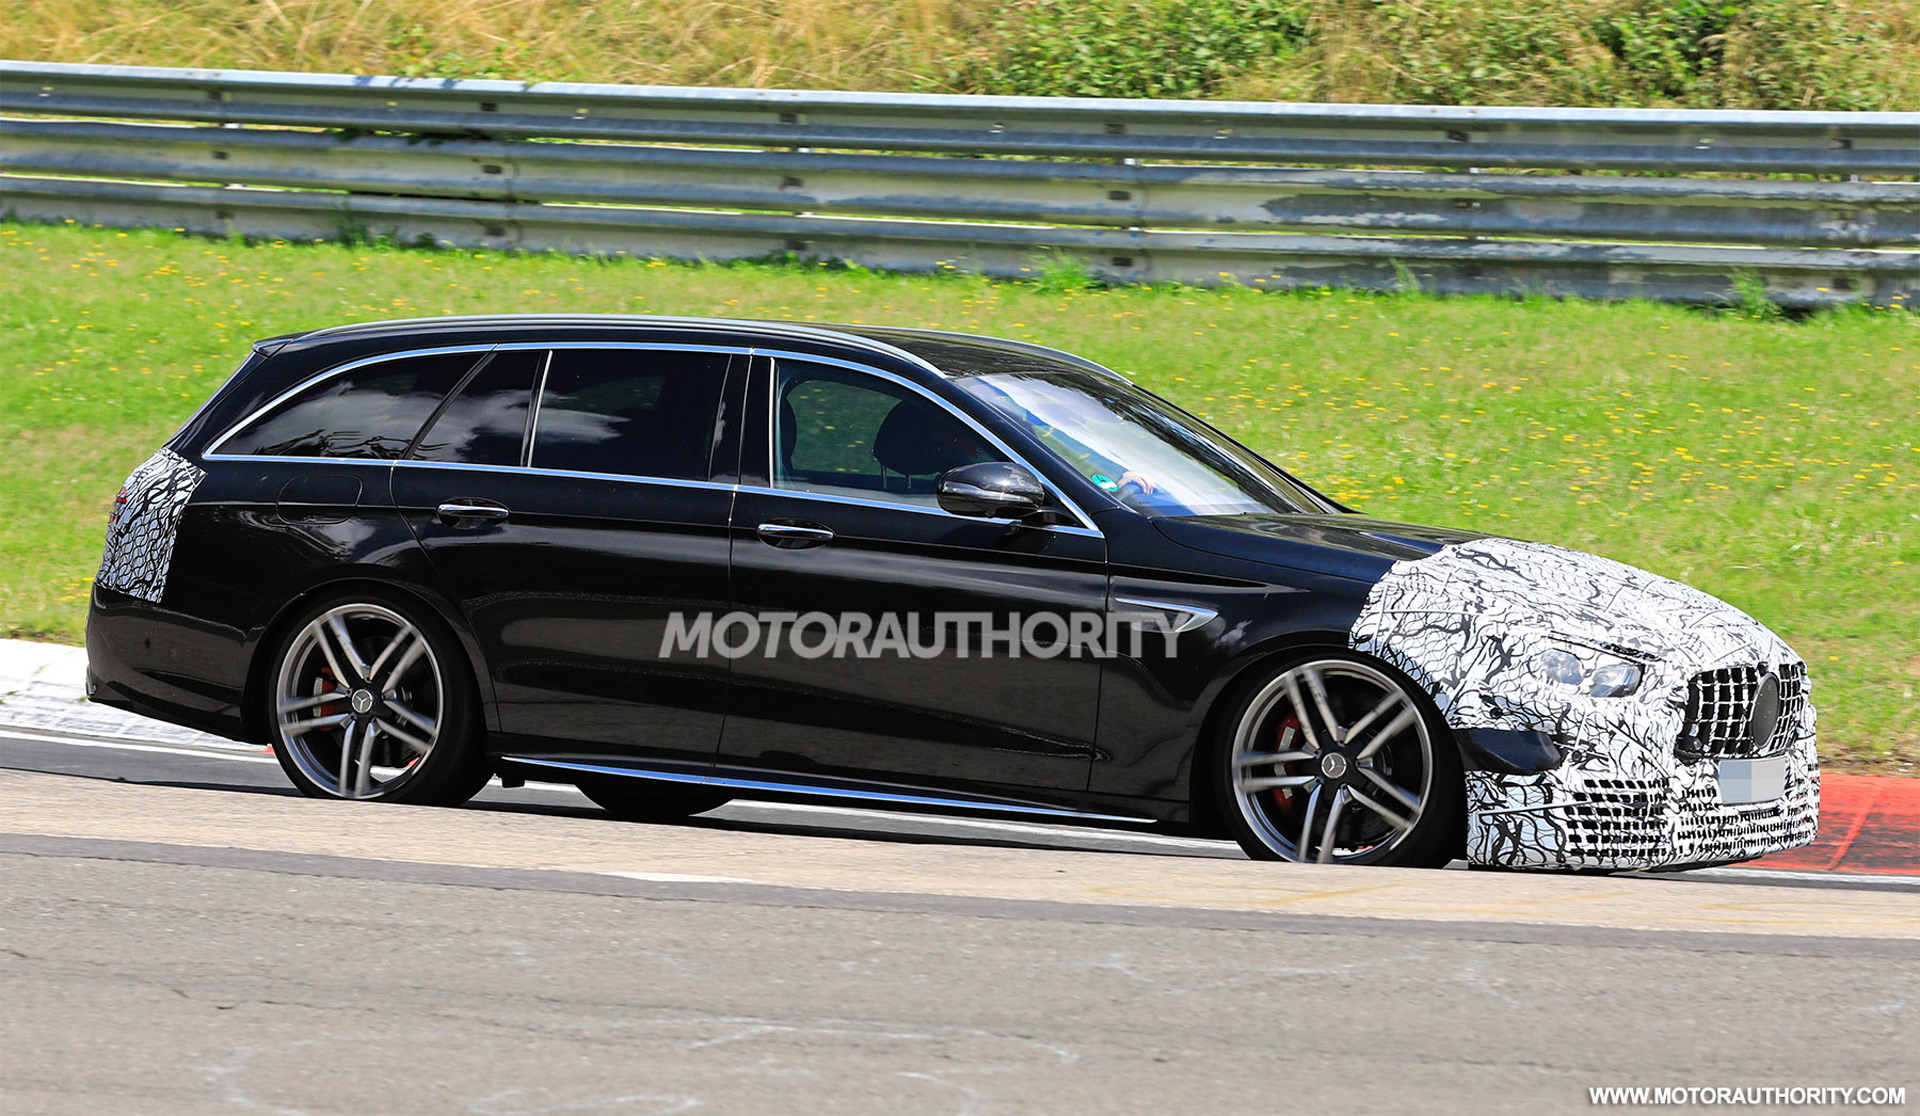 2020 - [Mercedes-Benz] Classe E restylée  - Page 2 2021-mercedes-amg-e63-wagon-facelift-spy-shots--photo-credit-s-baldauf-sb-medien_100711688_h